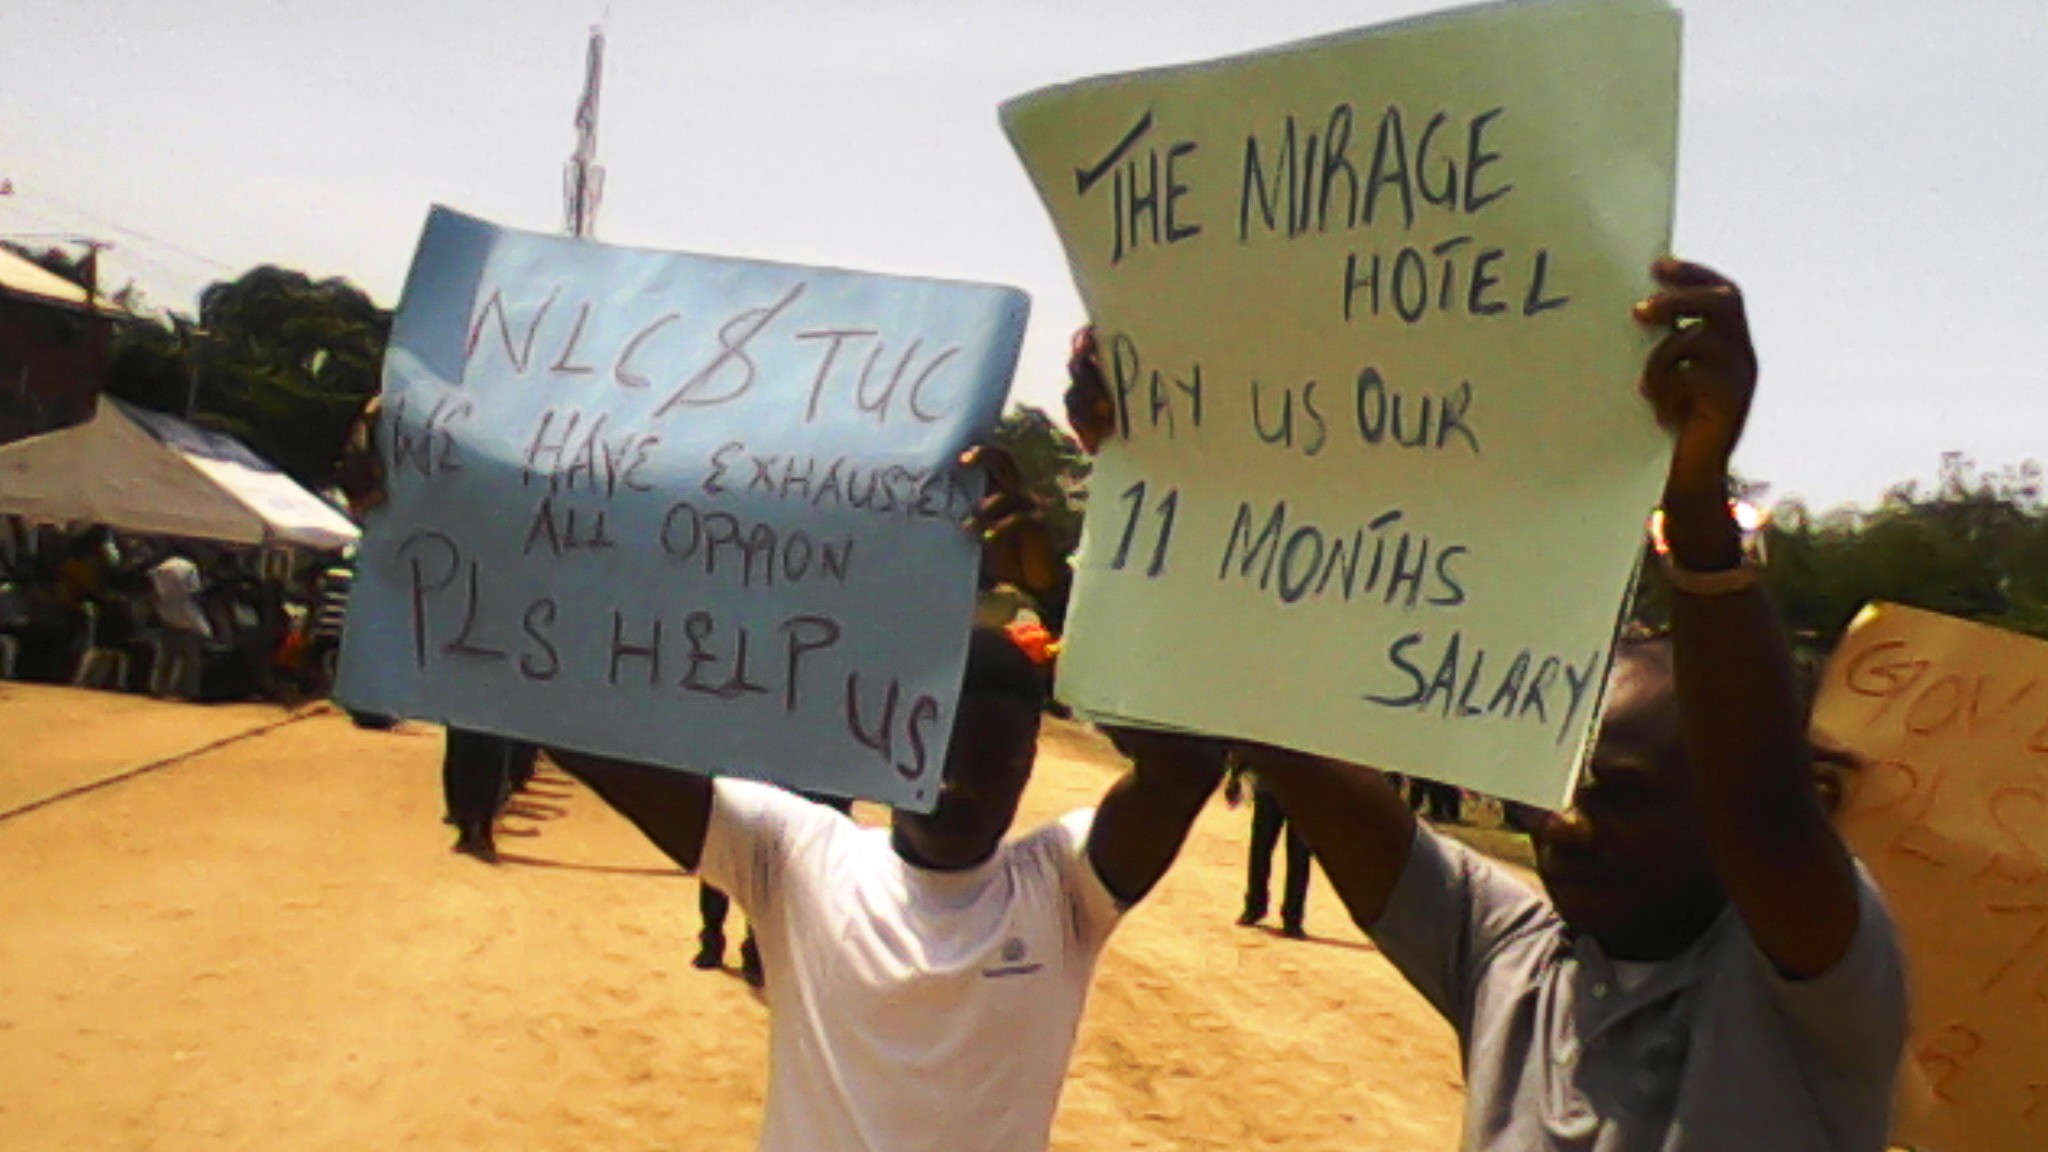 Placard carrying staff of Mirage Hotel